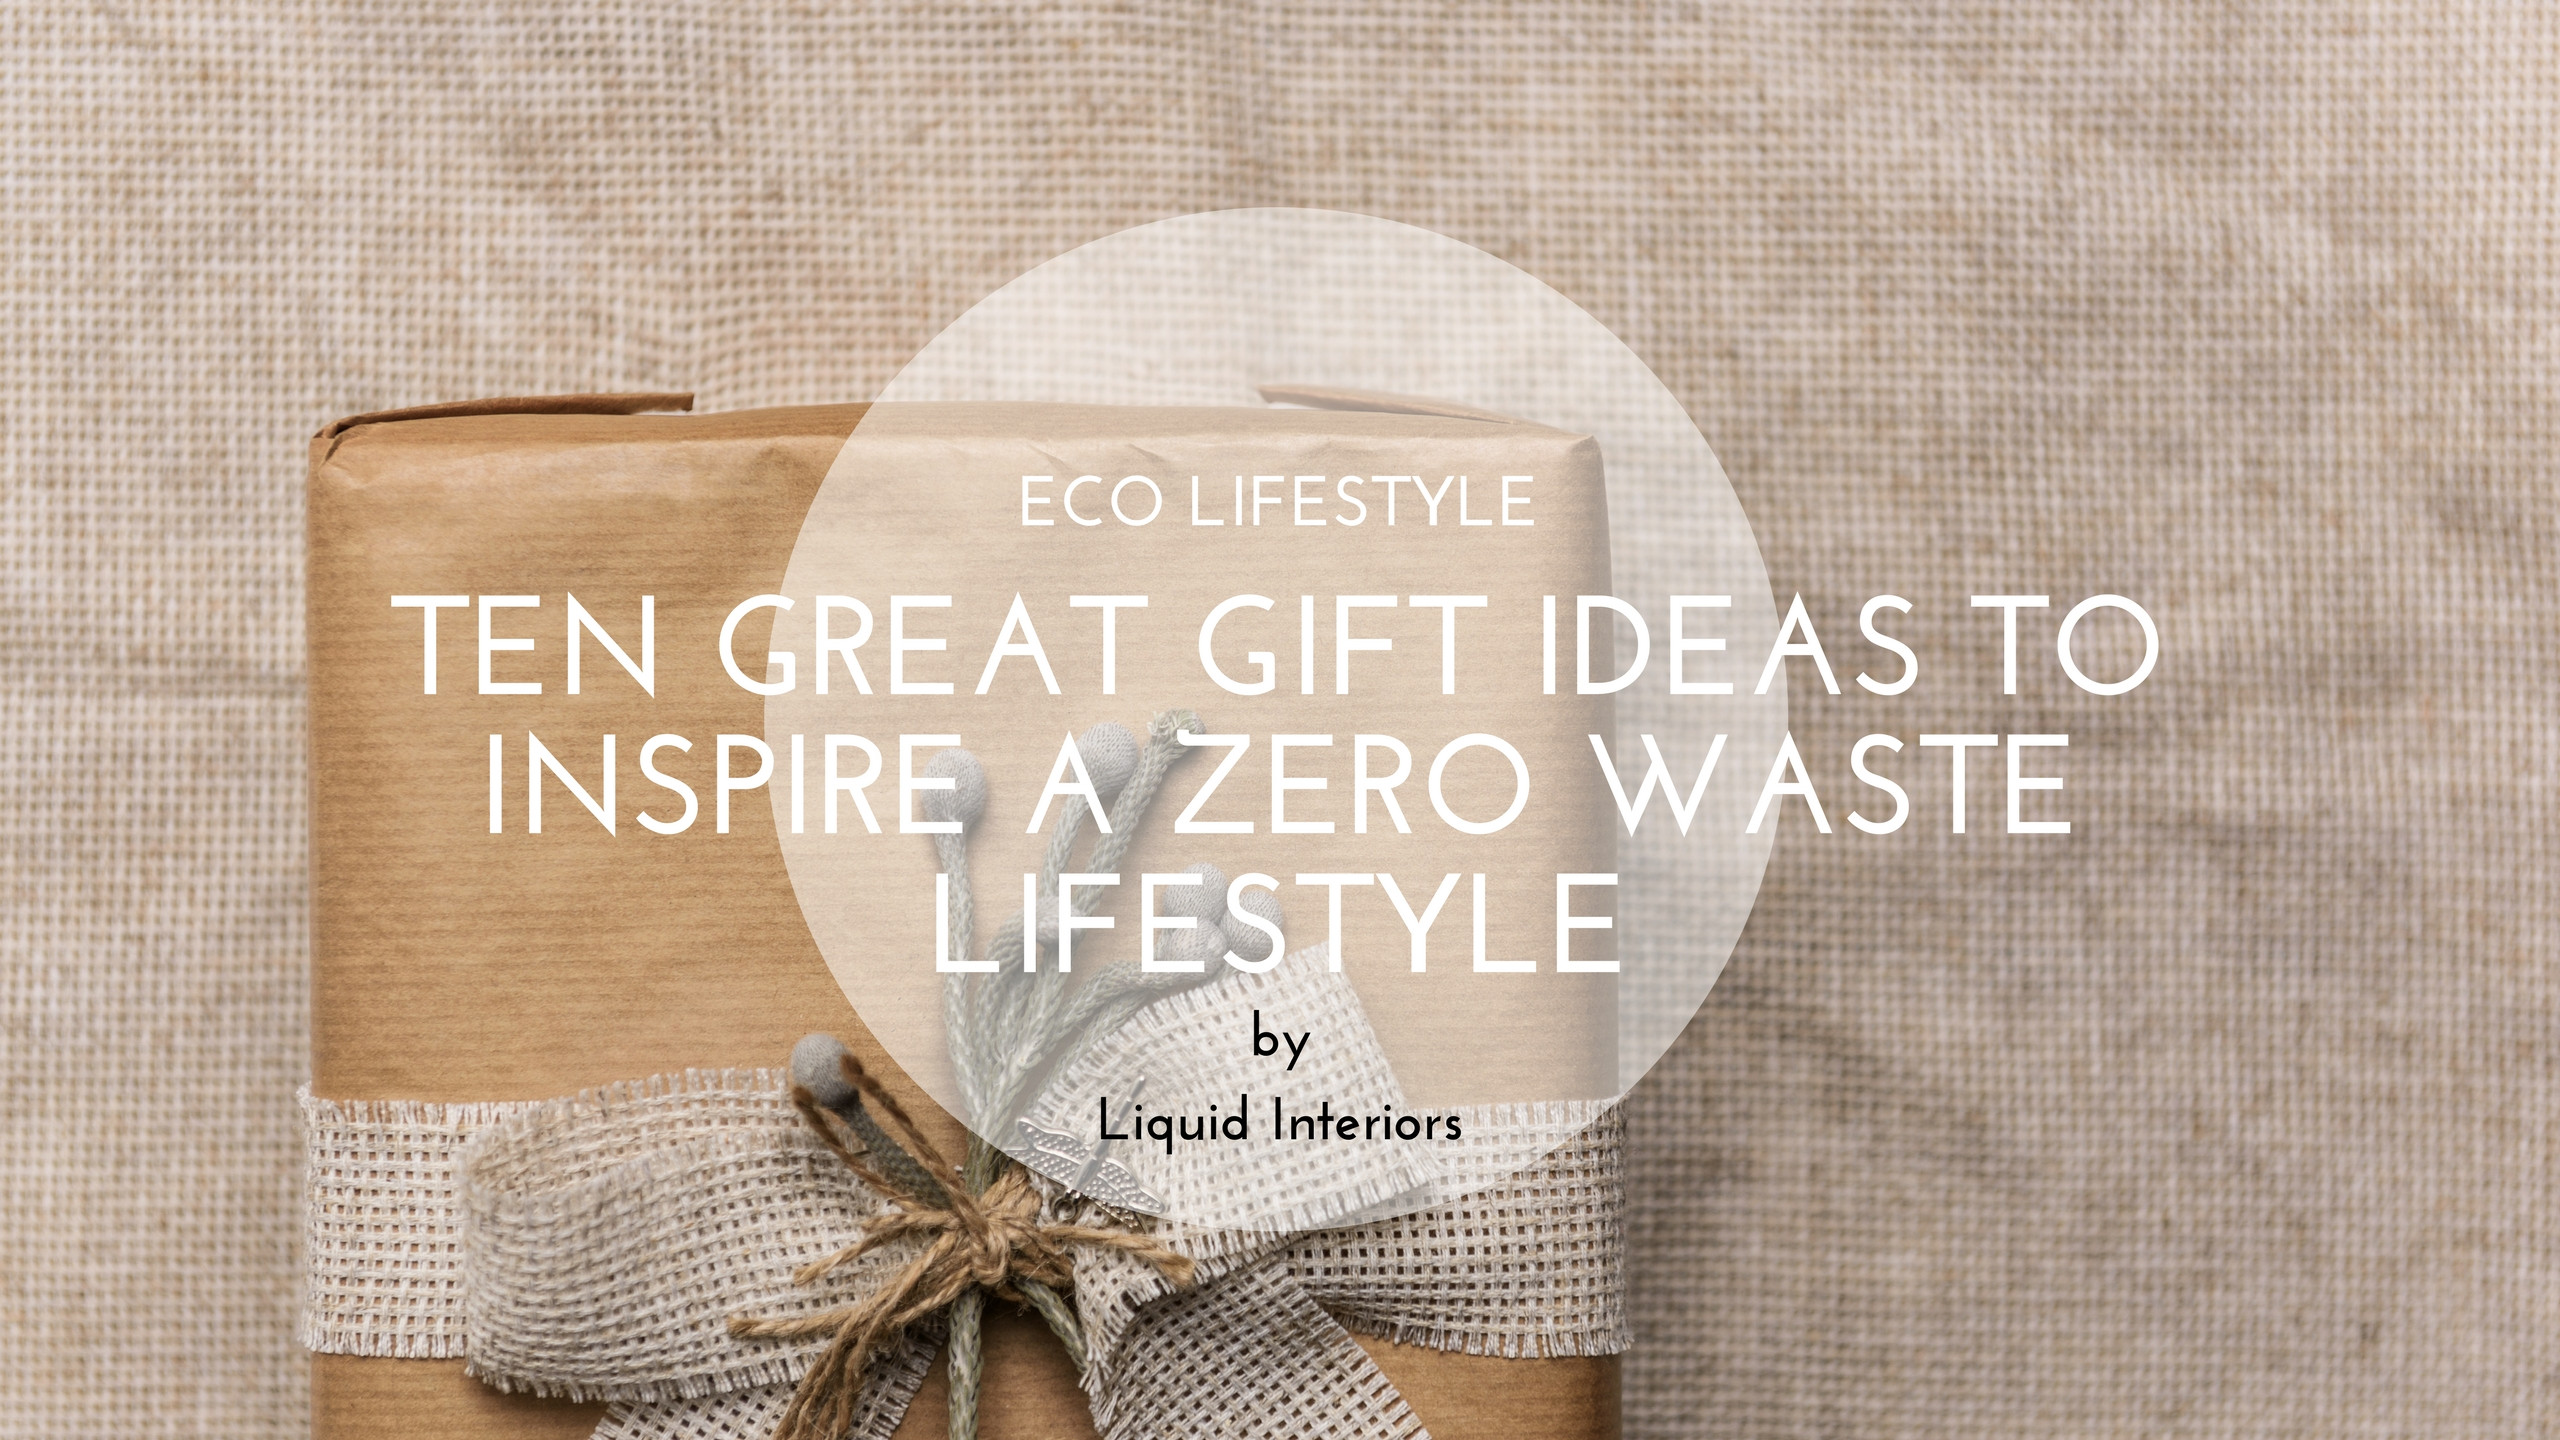 Best ideas about Zero Waste Gift Ideas . Save or Pin 10 Great Gift Ideas To Inspire A Zero Waste Lifestyle Now.